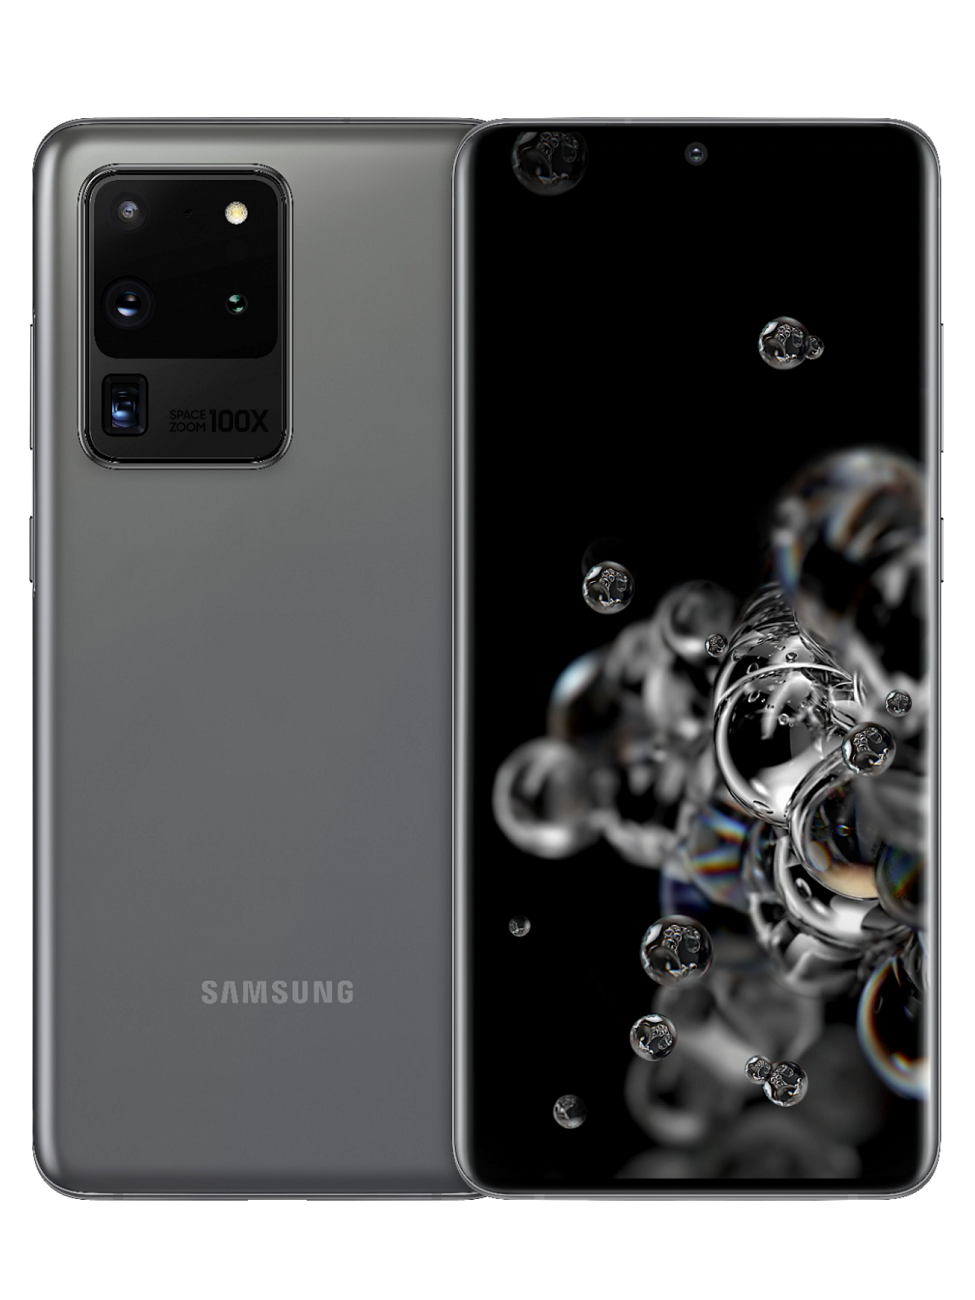 Samsung Snapdragon 865 Galaxy S20 128gb Supercharge Octa Core In-Screen fingerprint recognition/face recognition